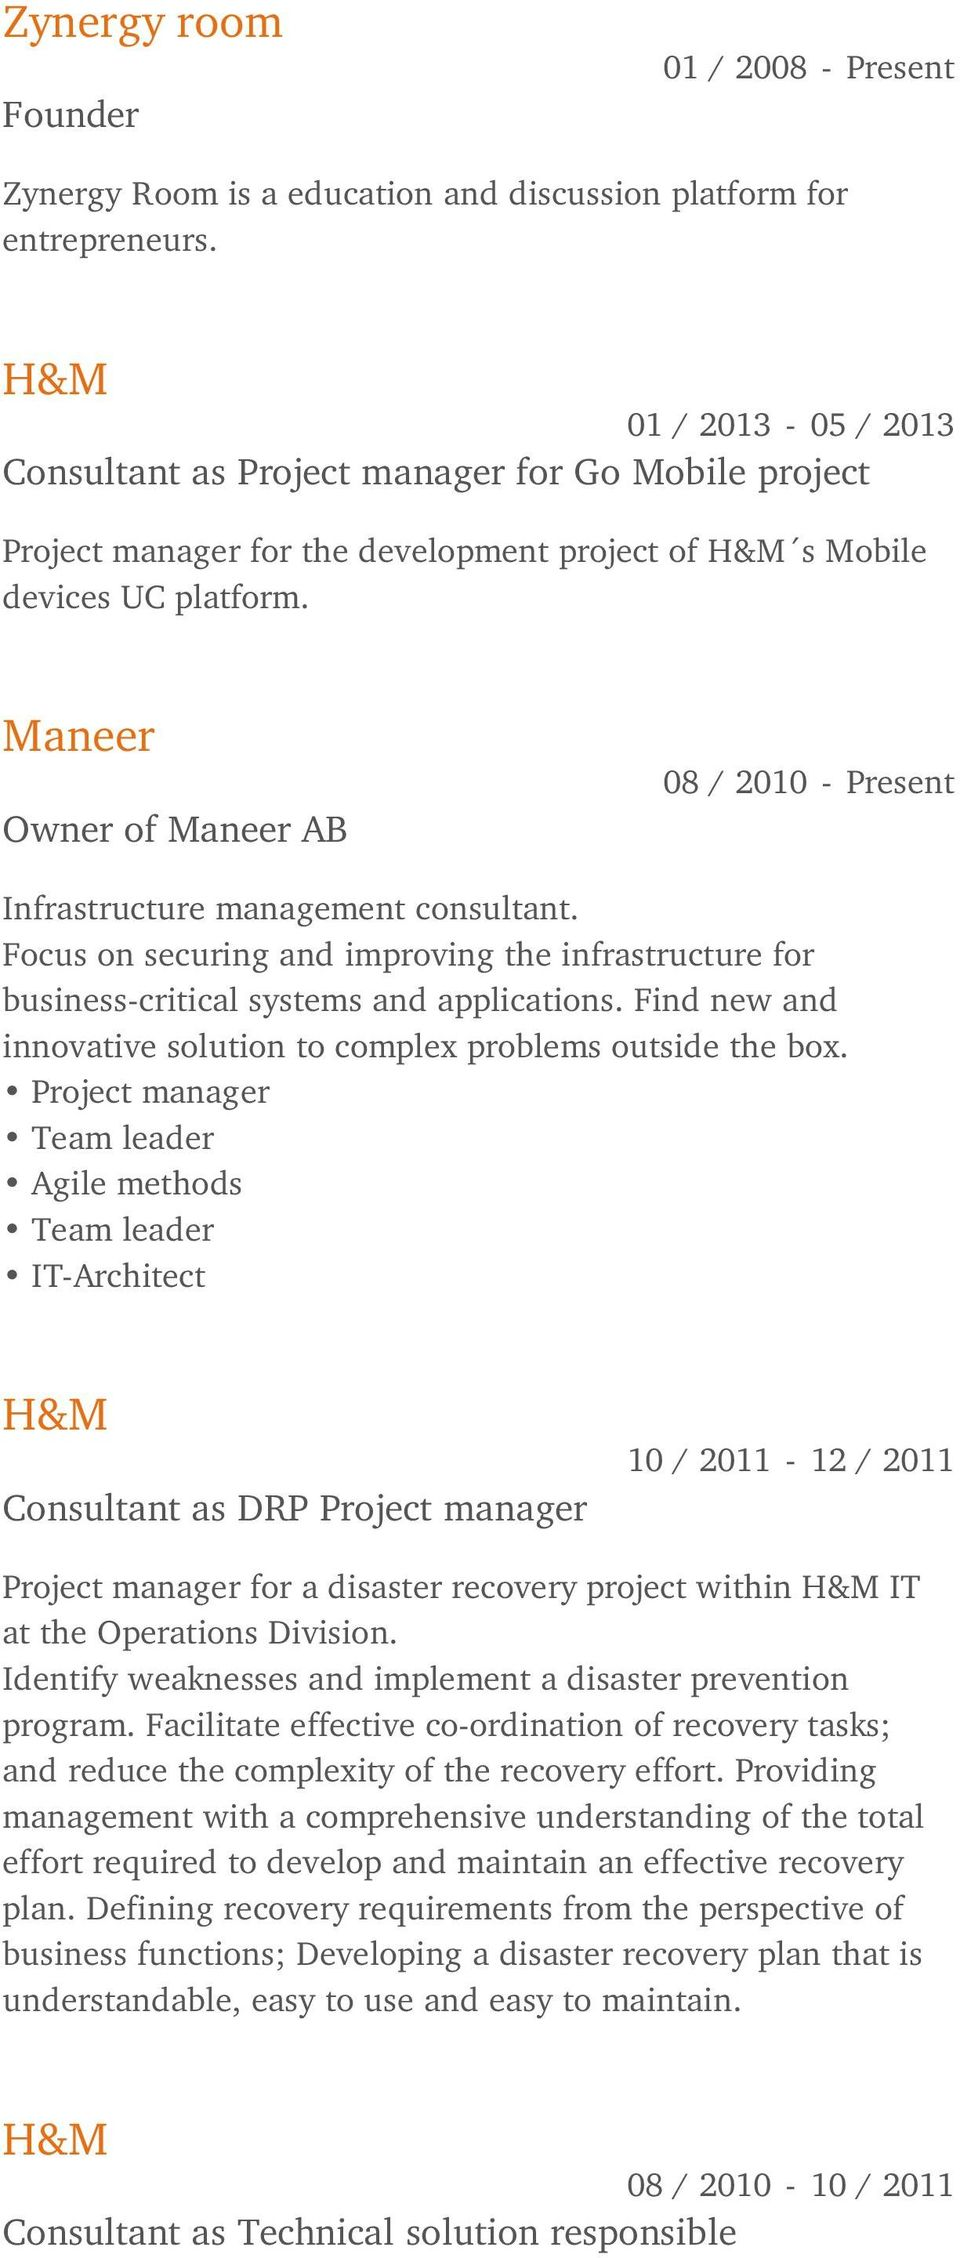 Maneer Owner of Maneer AB 08 / 2010 - Present Infrastructure management consultant. Focus on securing and improving the infrastructure for business-critical systems and applications.